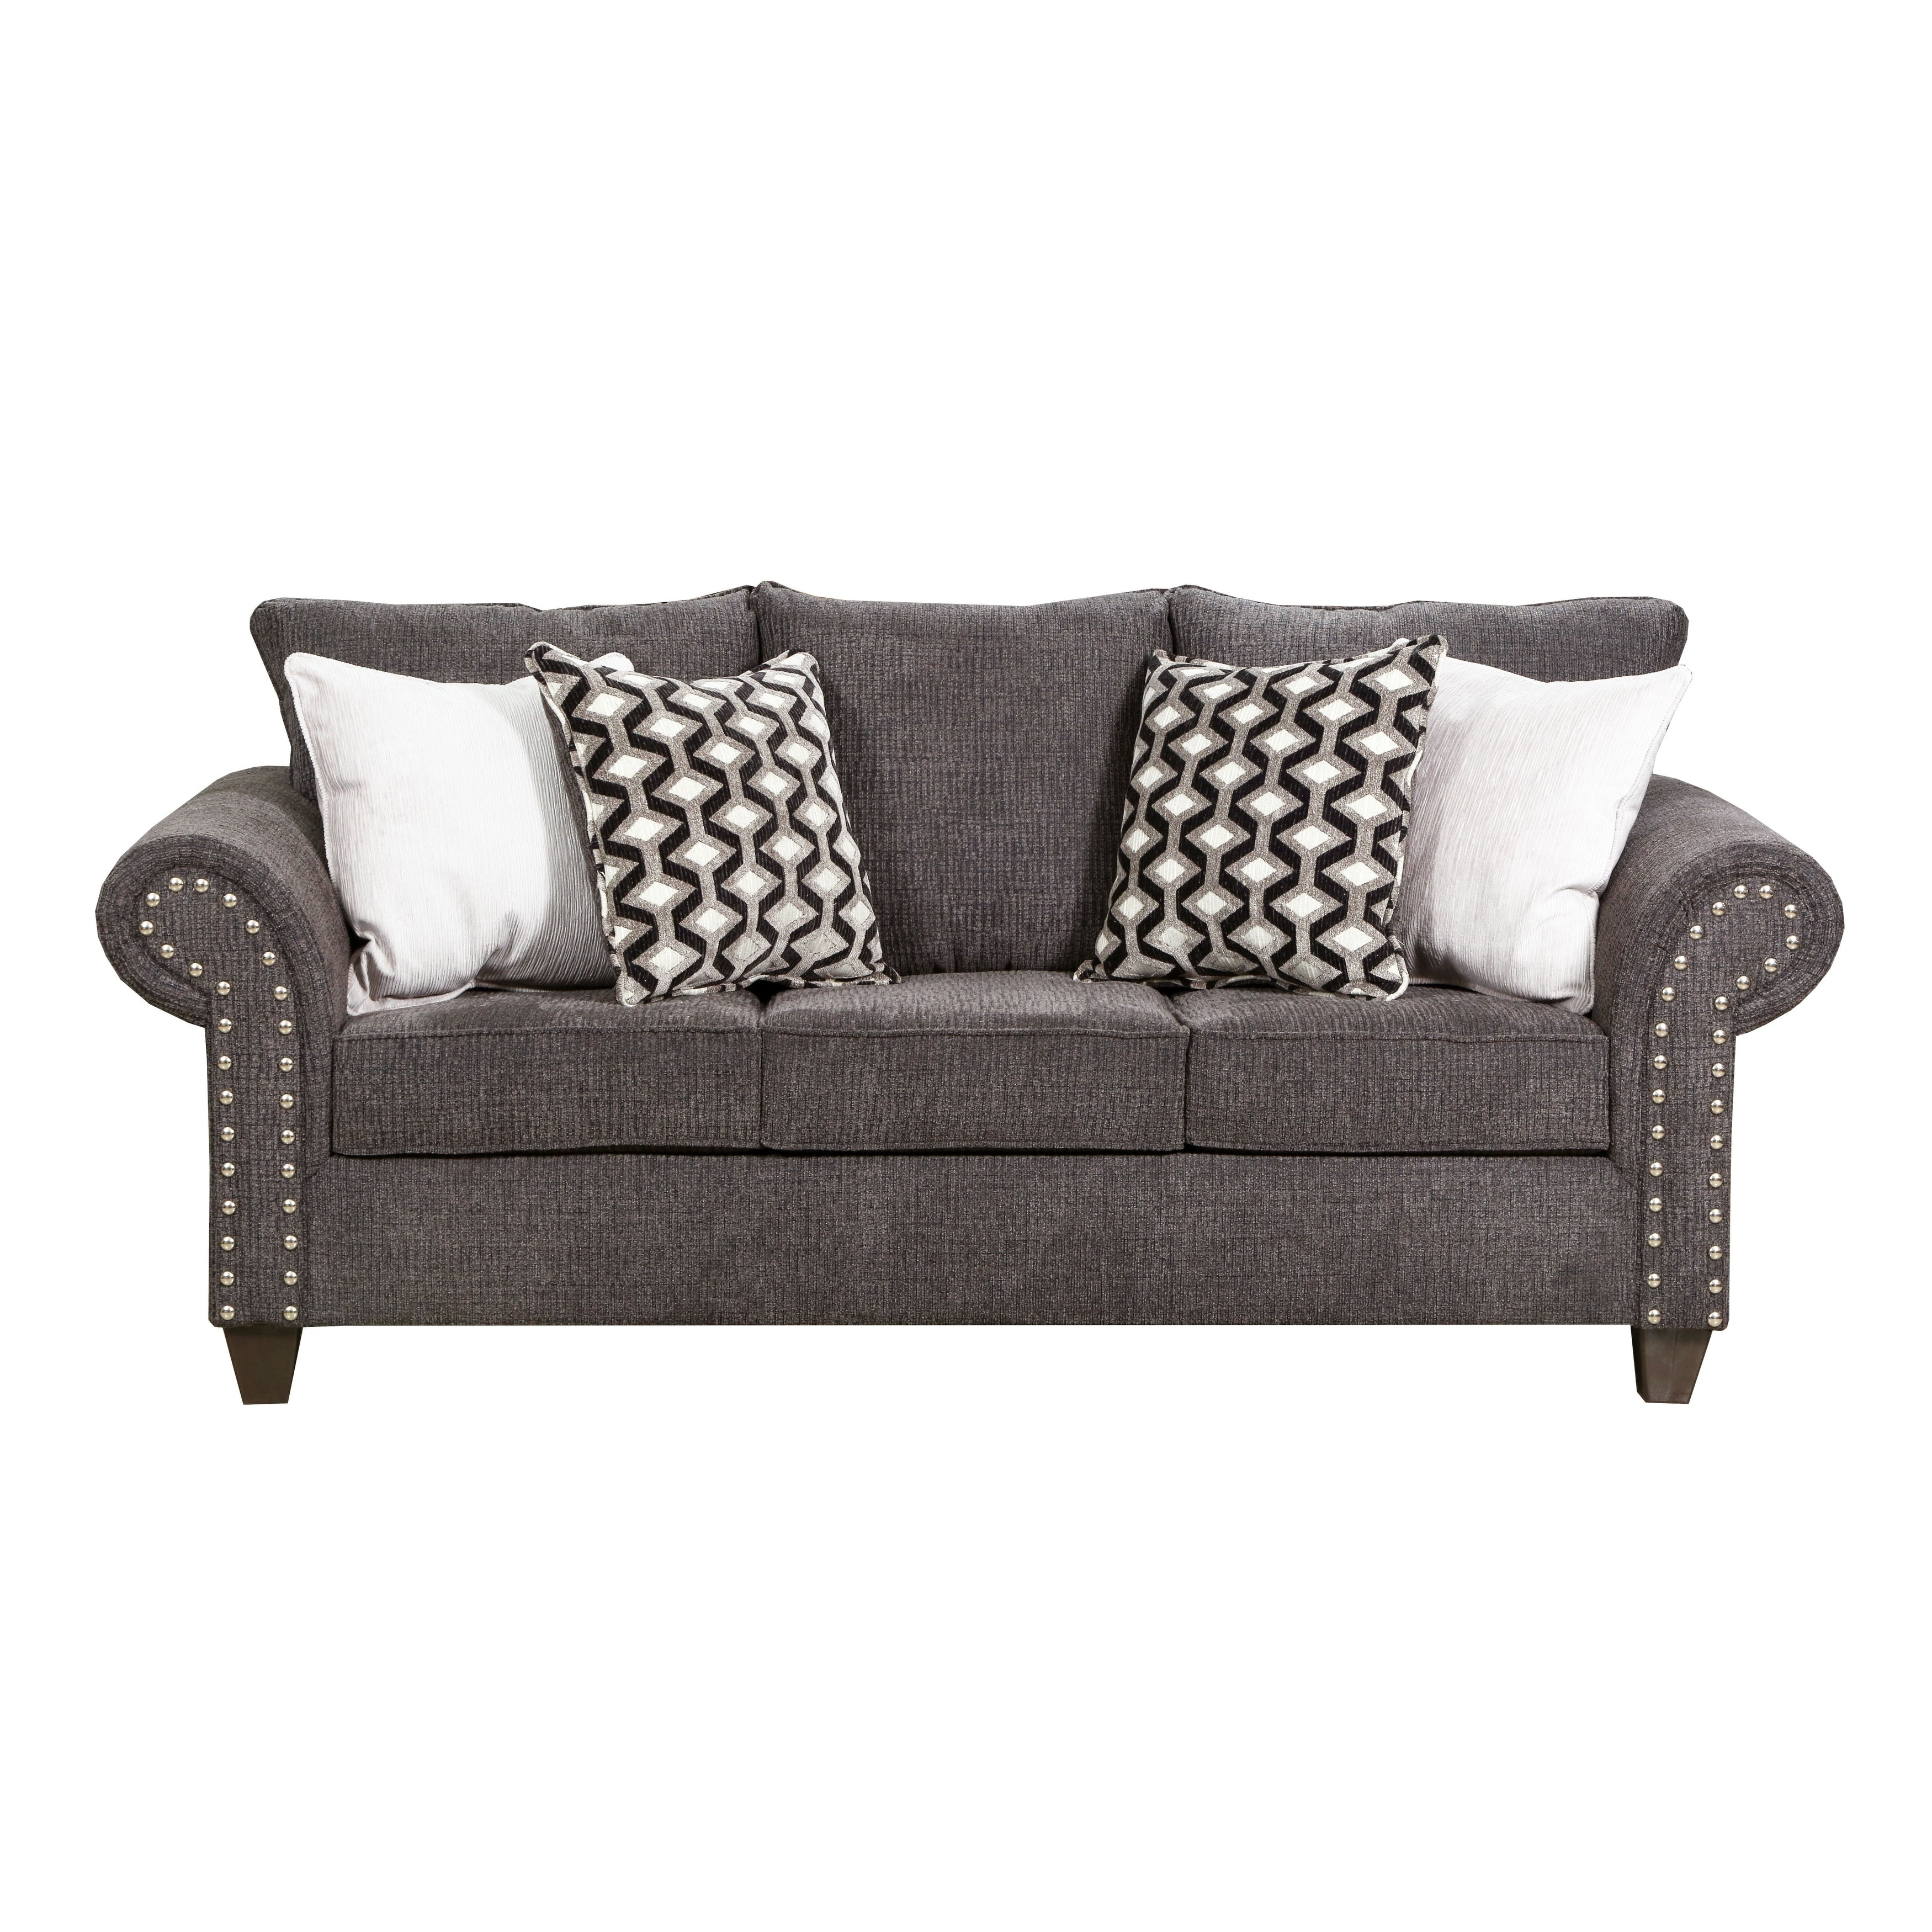 Simmons Upholstery Reed Charcoal Full Sleeper Sofa Free Shipping Today 22231392